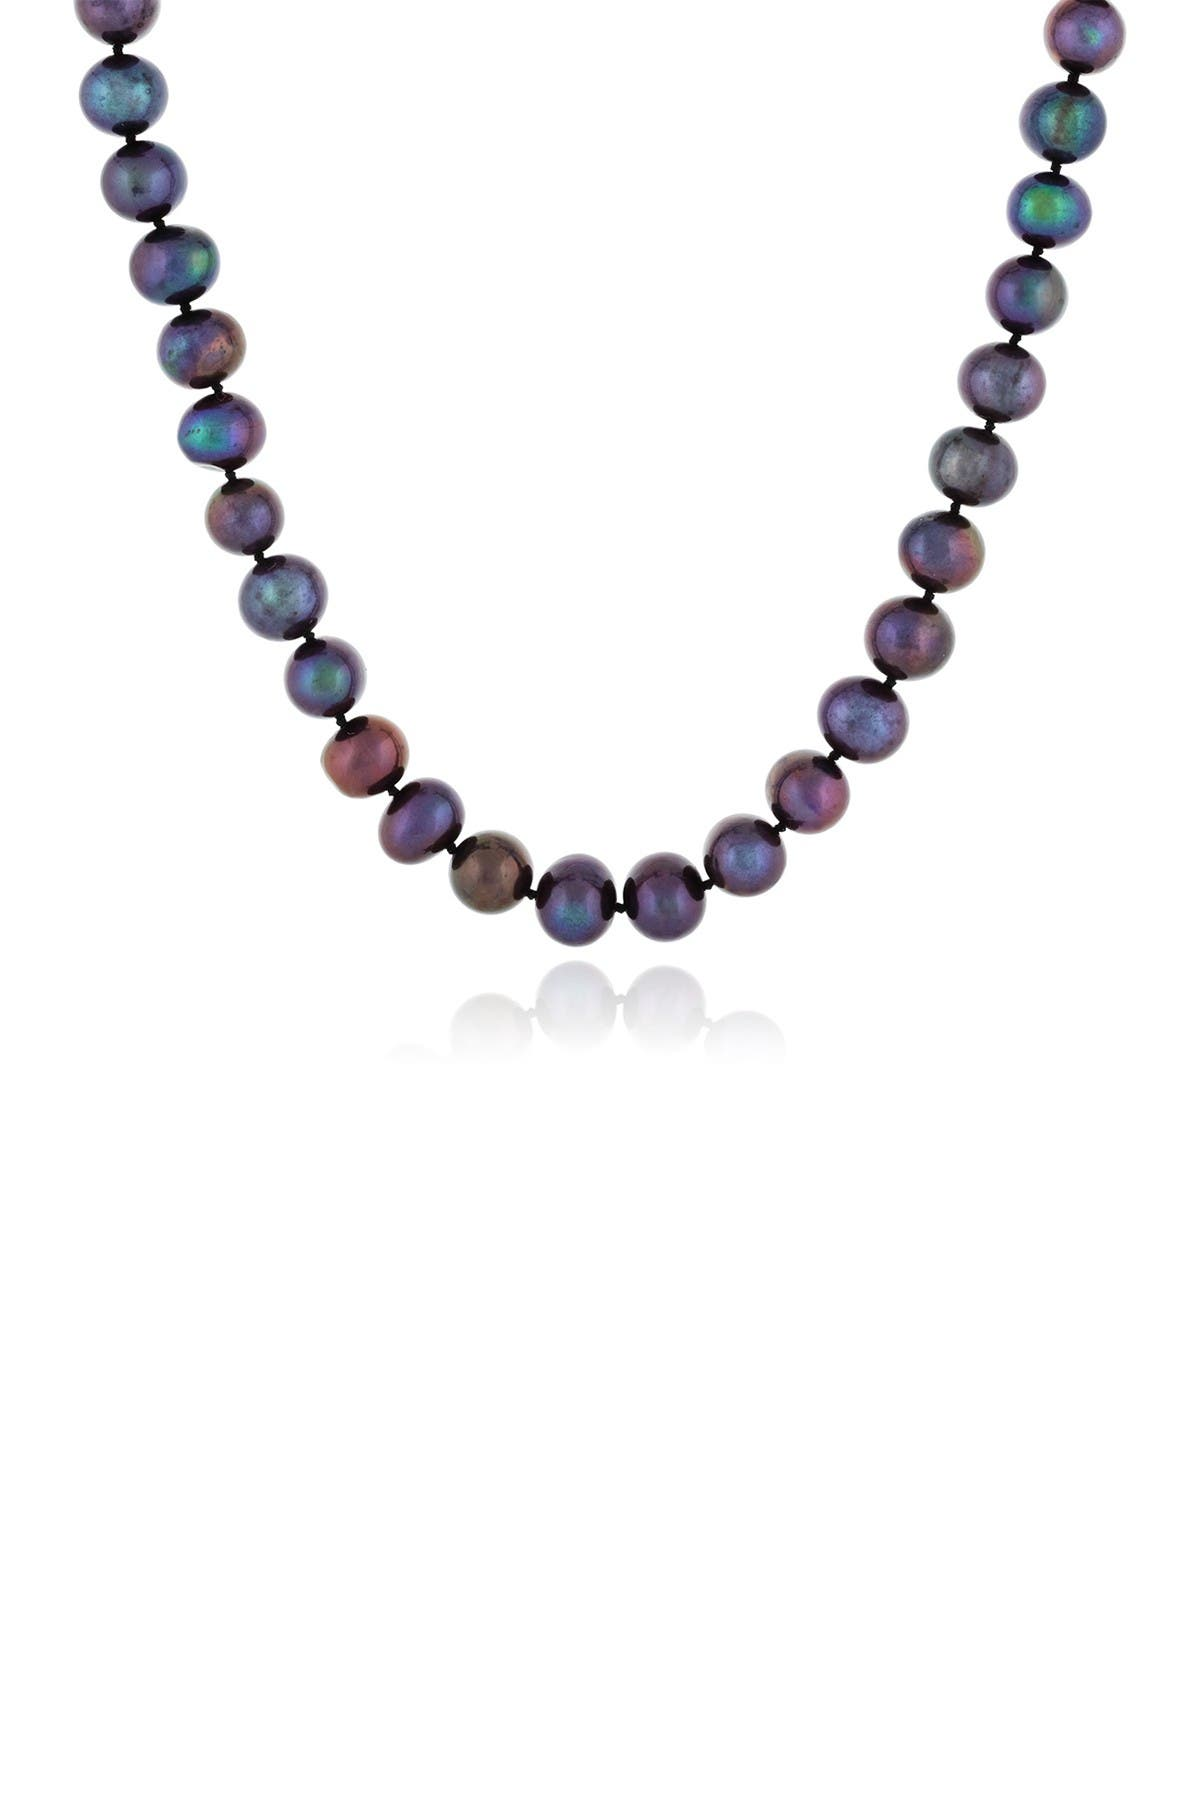 Image of Splendid Pearls 14K Yellow Gold 9-10mm Black Freshwater Pearl Necklace